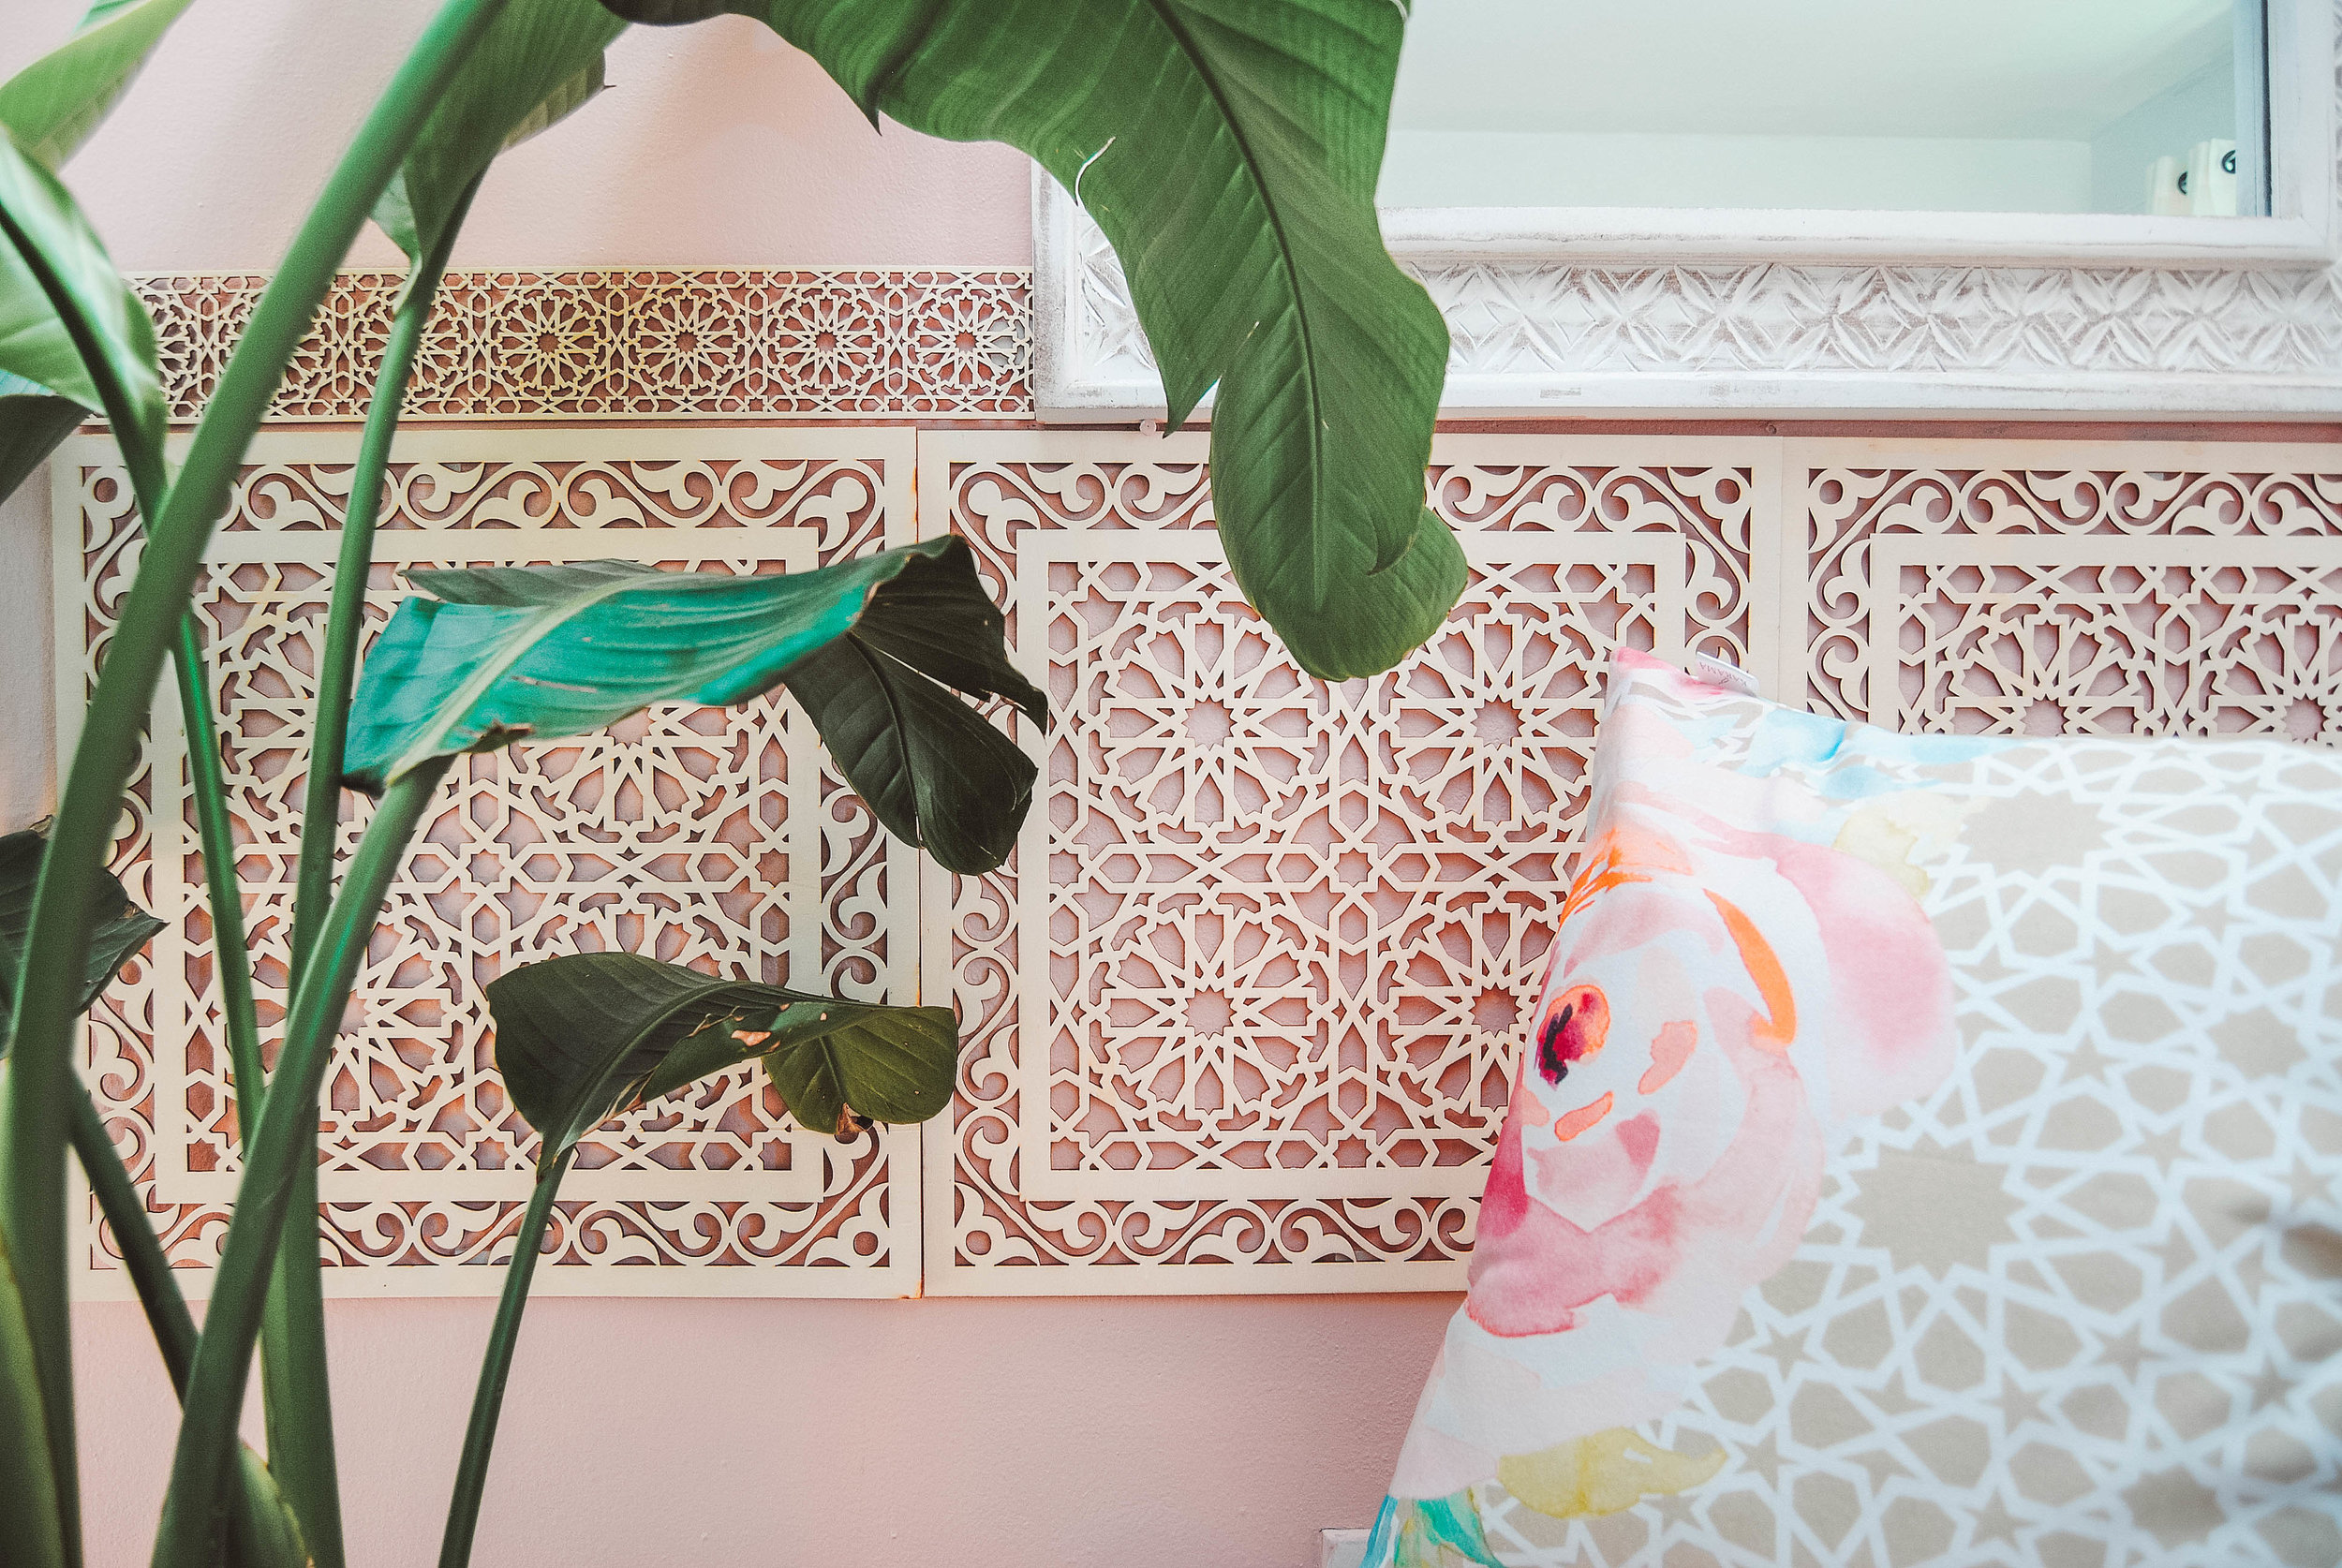 Arabesque Moroccan Accent Wall- Karama by Hoda- Moroccan Pink Salmon Wall